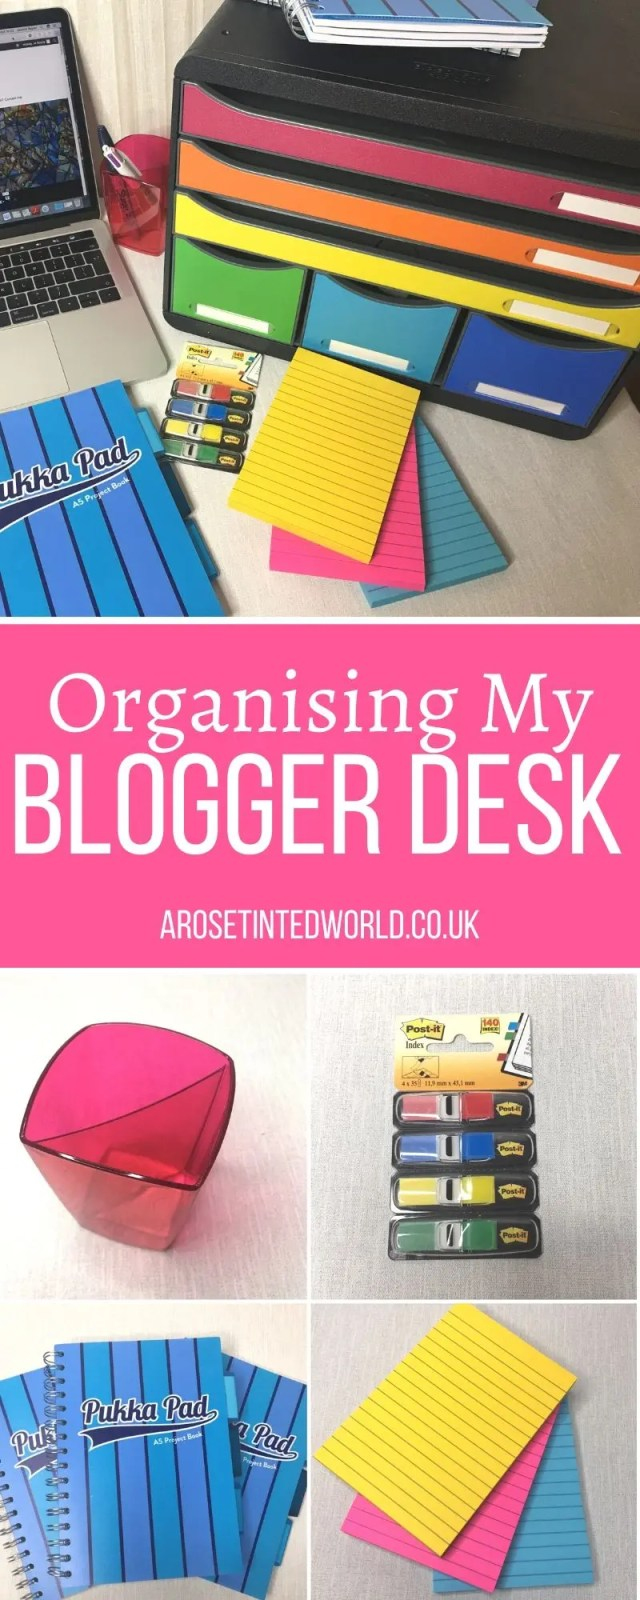 Organising My Blogger Desk - Working from home can be hard. Make it easier with some brilliant new organising desk accessories. I love to have a space for all my blogging essentials. Viking kindly sent me some essentials to review. See what I thought. #bloggerideas #bloggerdesk #deskaccessories #ad